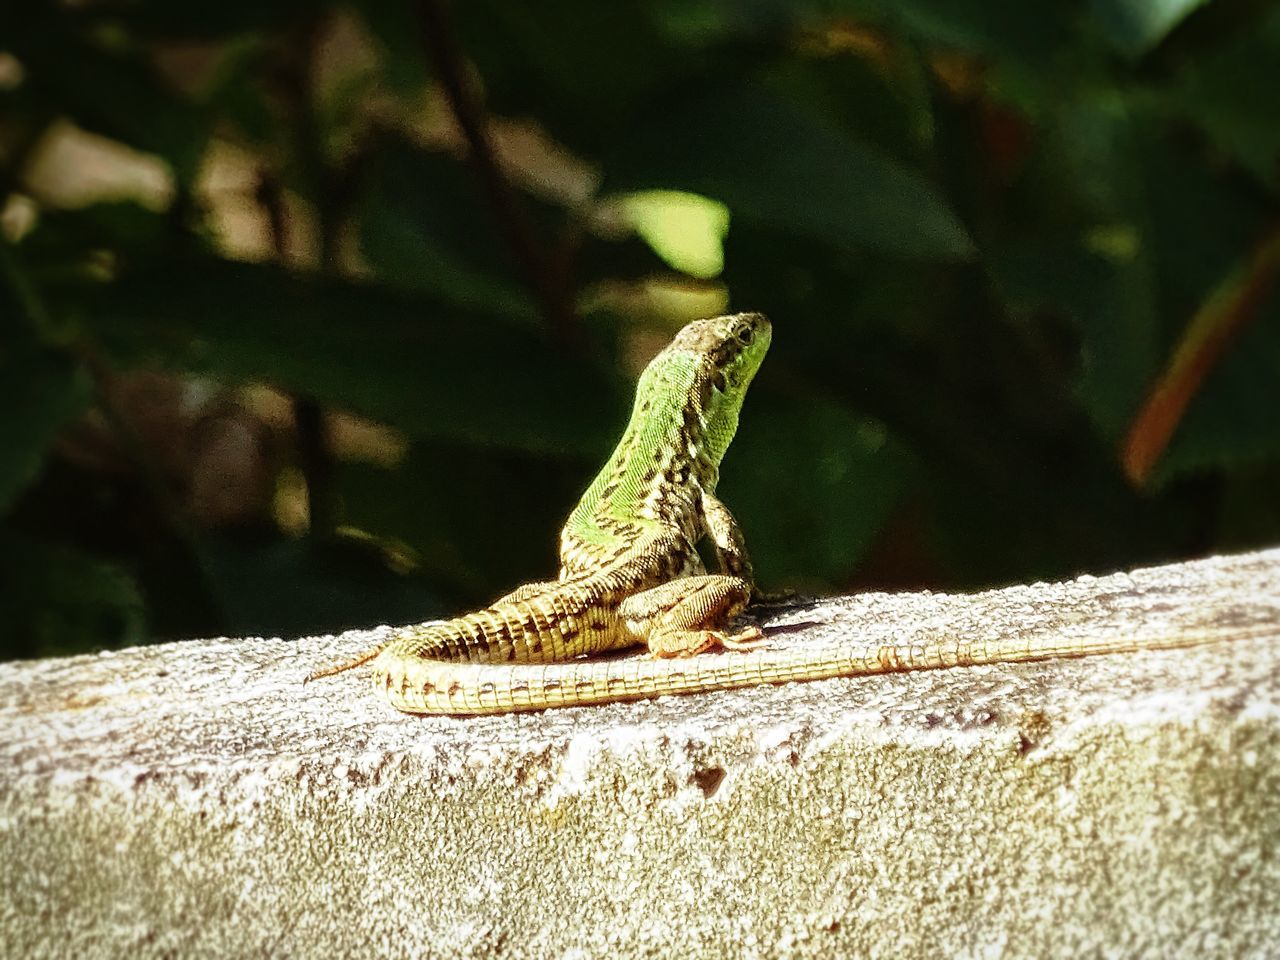 Lizard Lizards Wall Sunny Animal Animels Nature